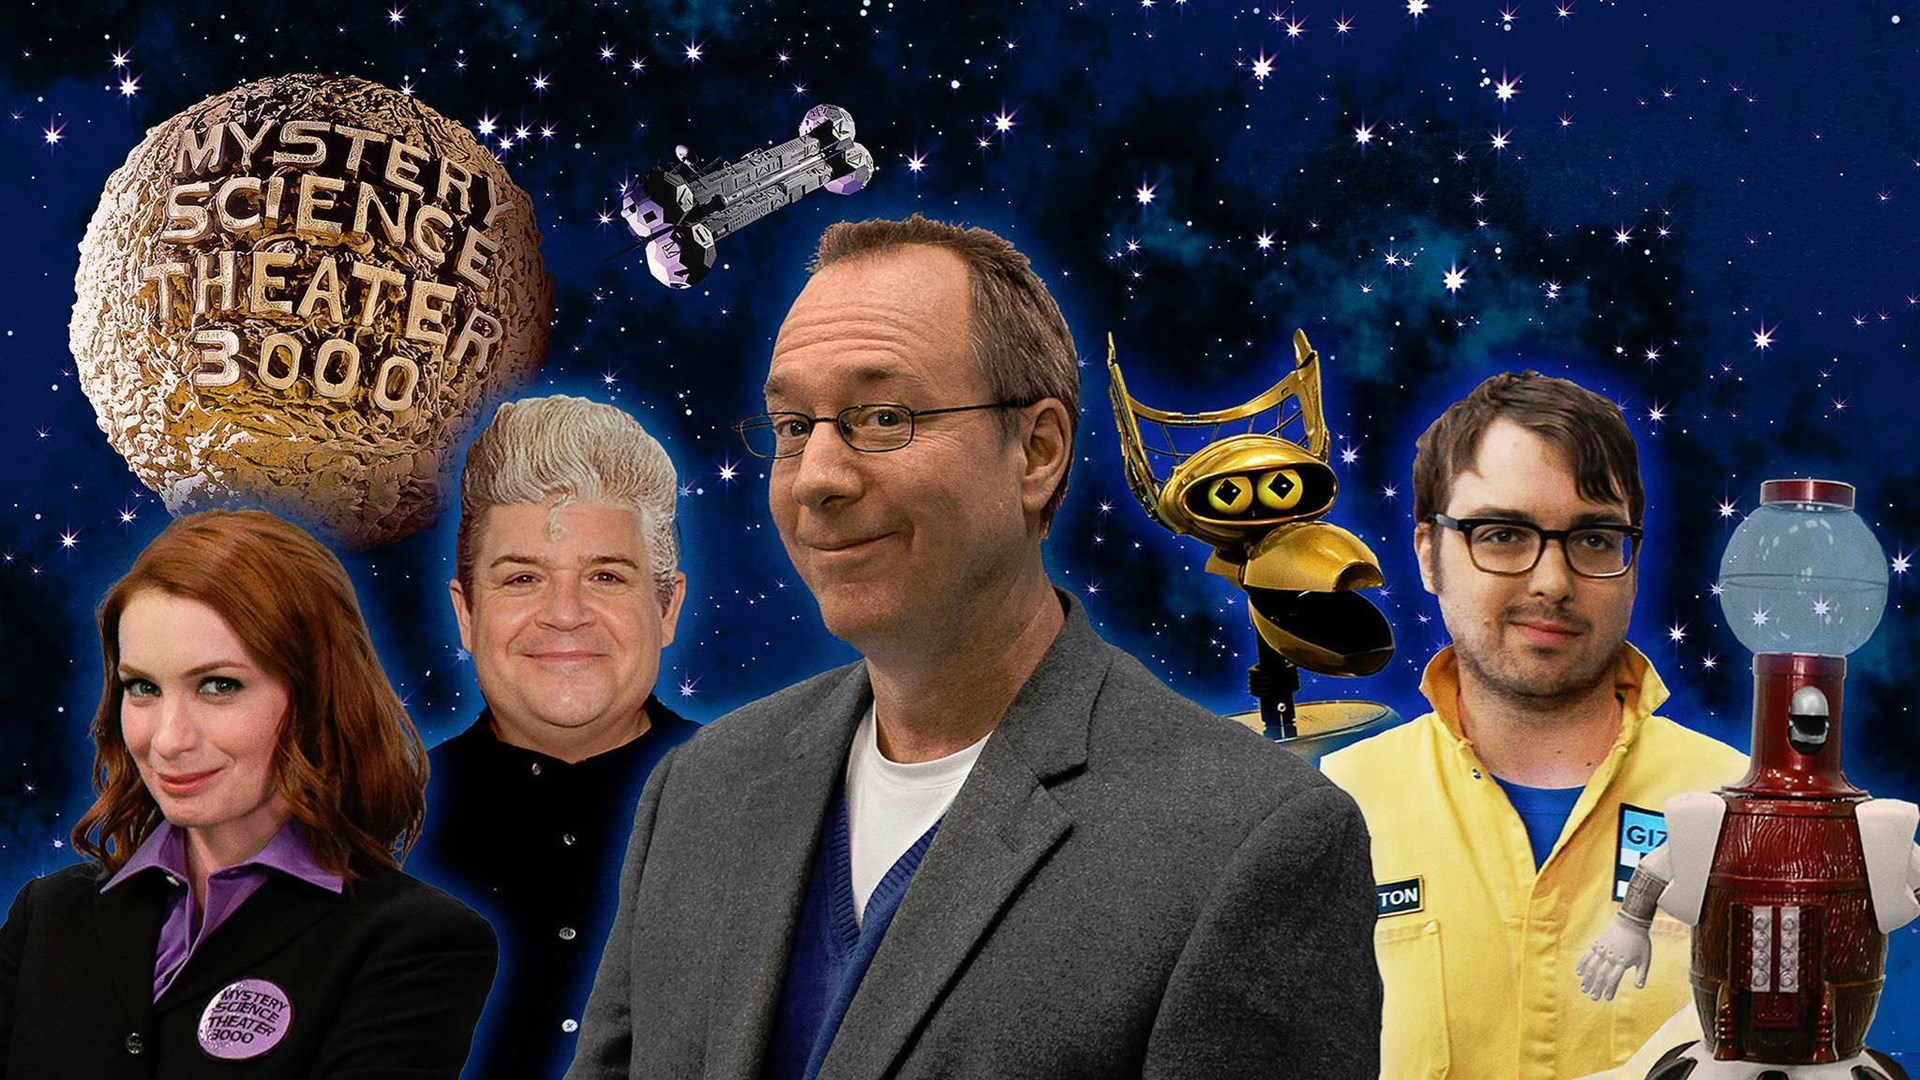 The Market S Glorious Resurrection Of Mystery Science Theater 3000